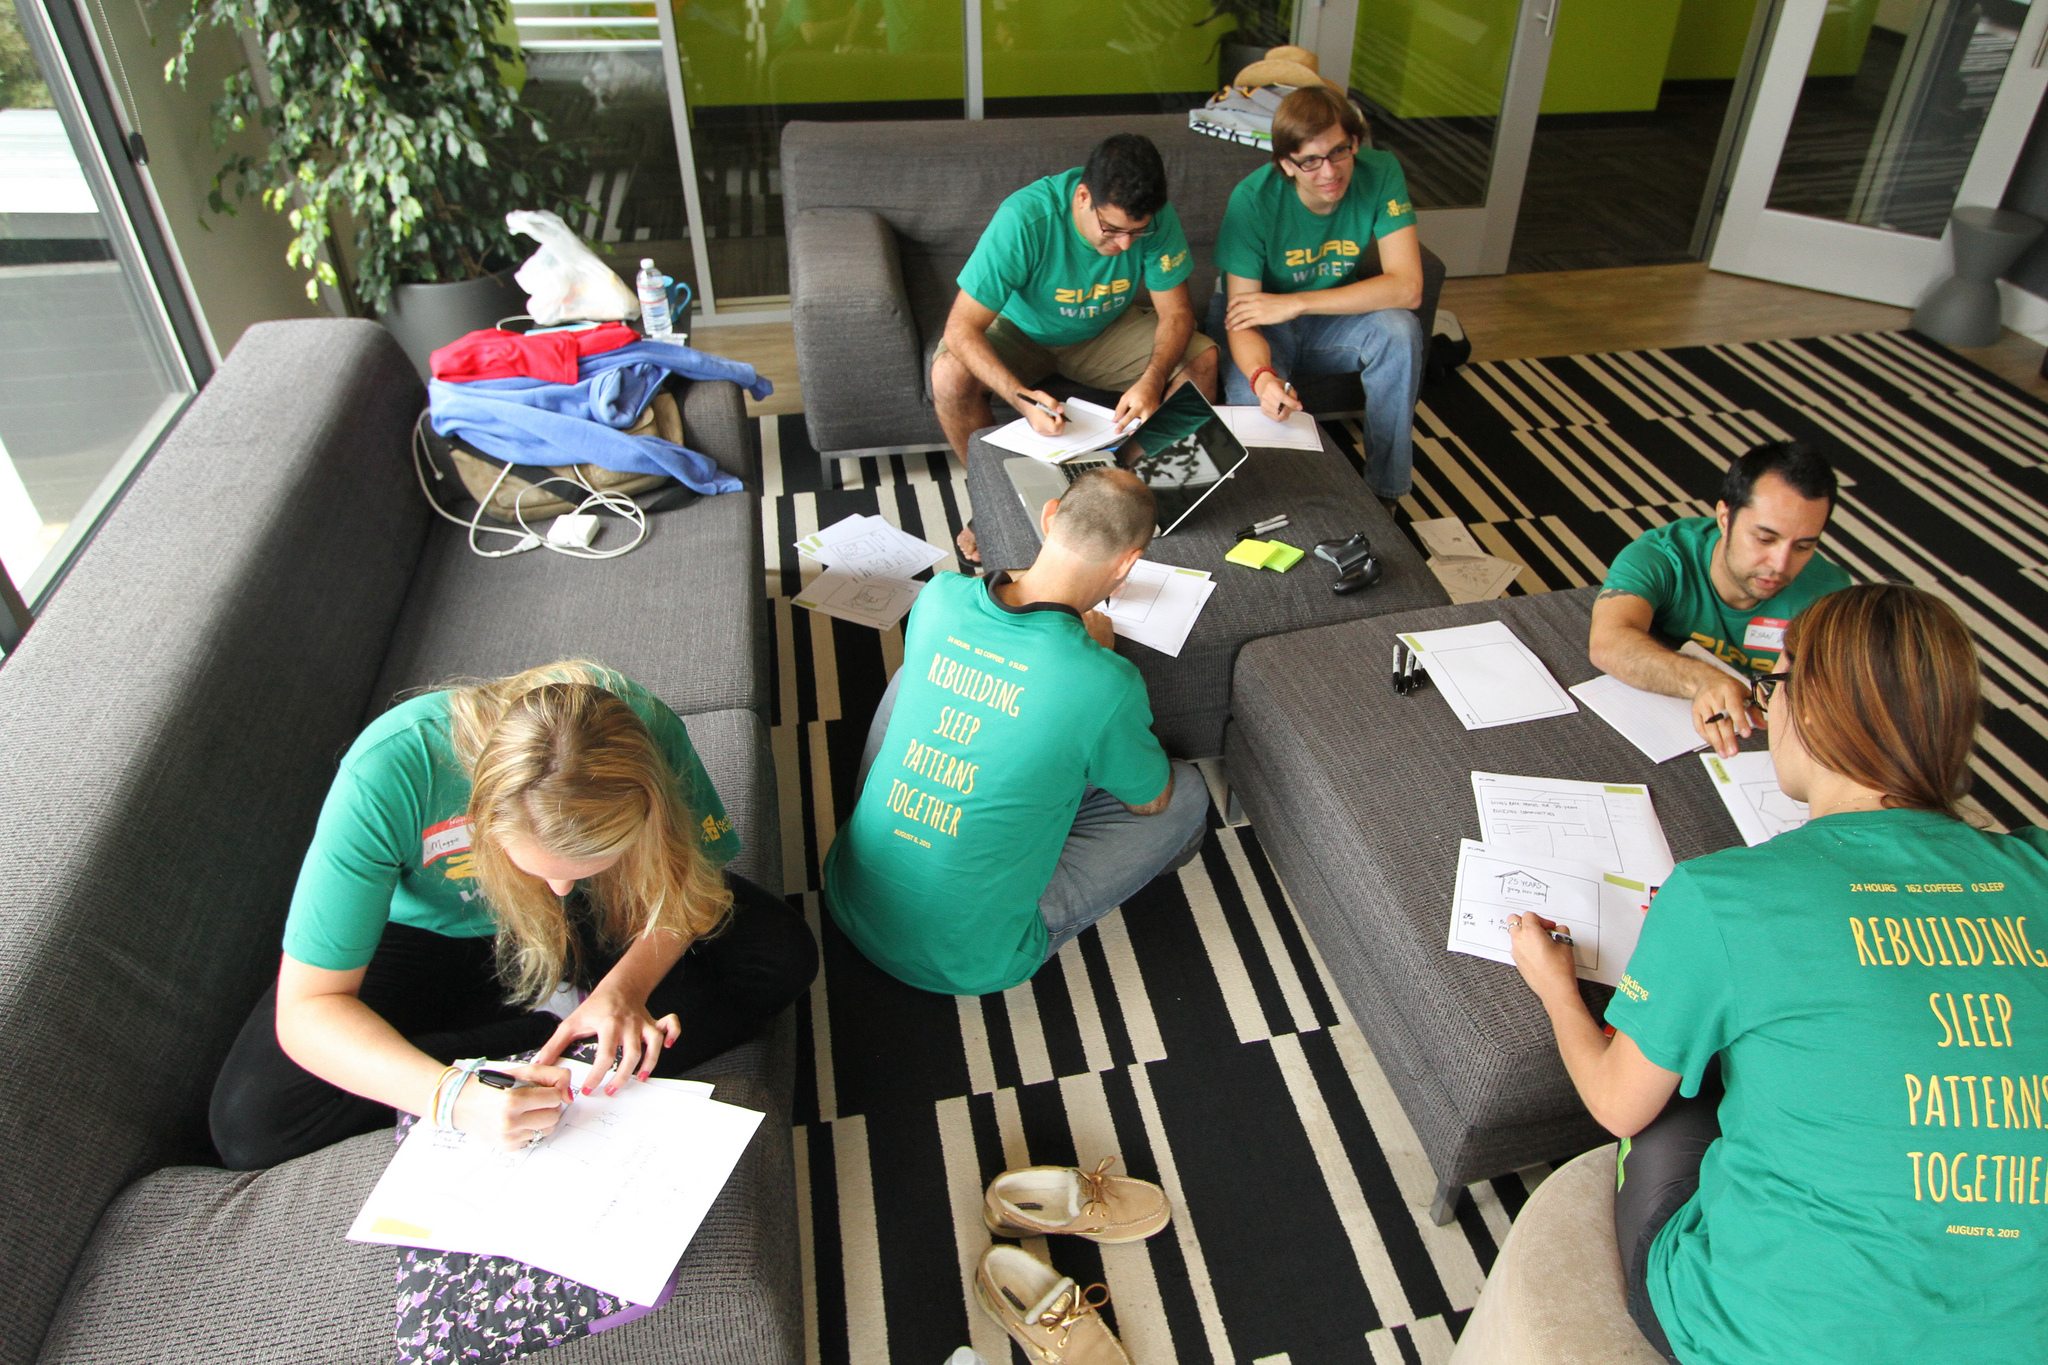 photo of people sketching ideas during ZURB wired 2014